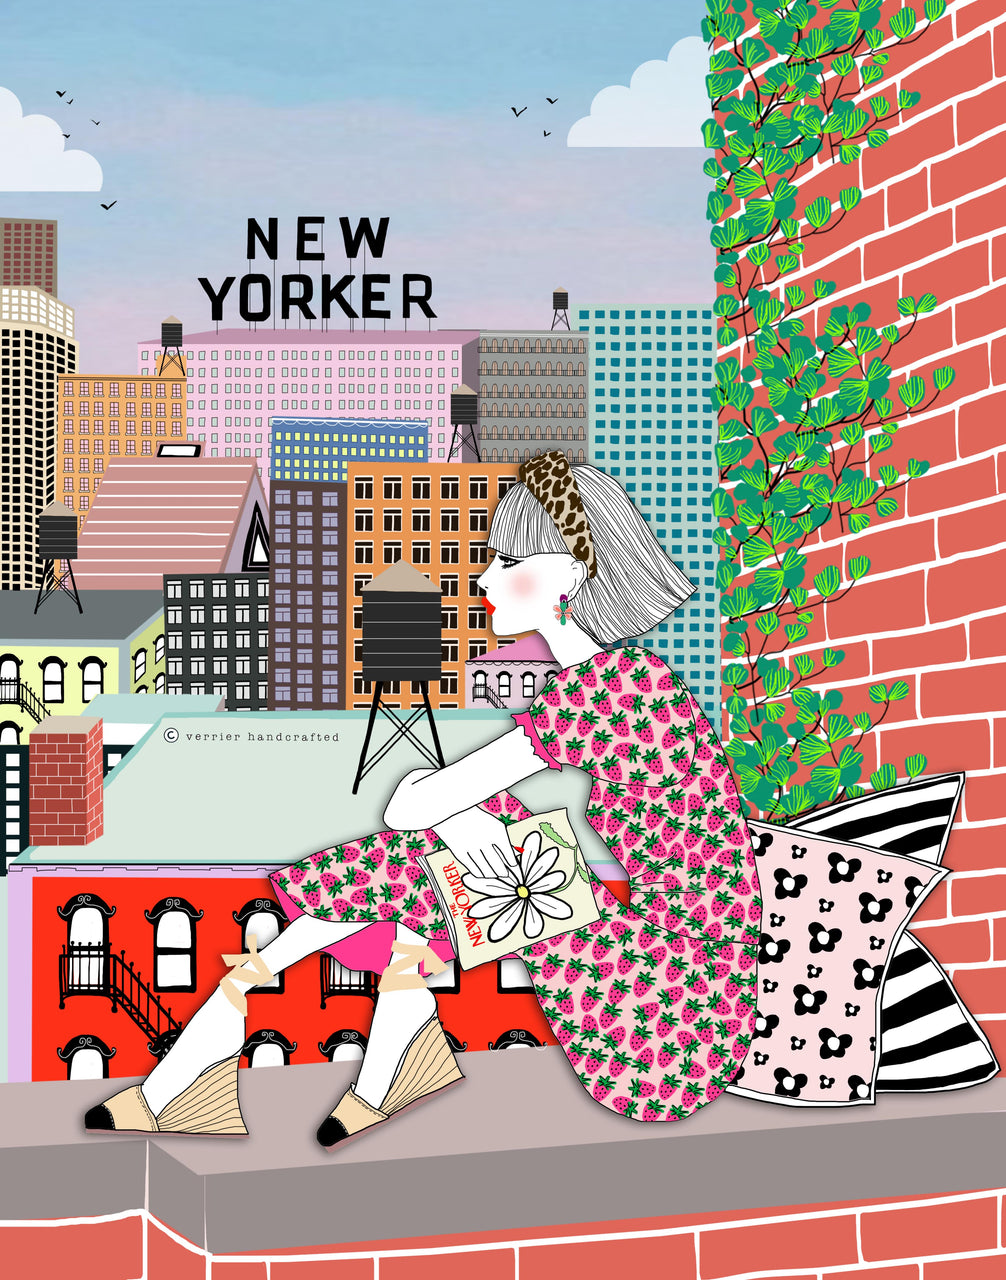 New Yorker (GREETING CARD)